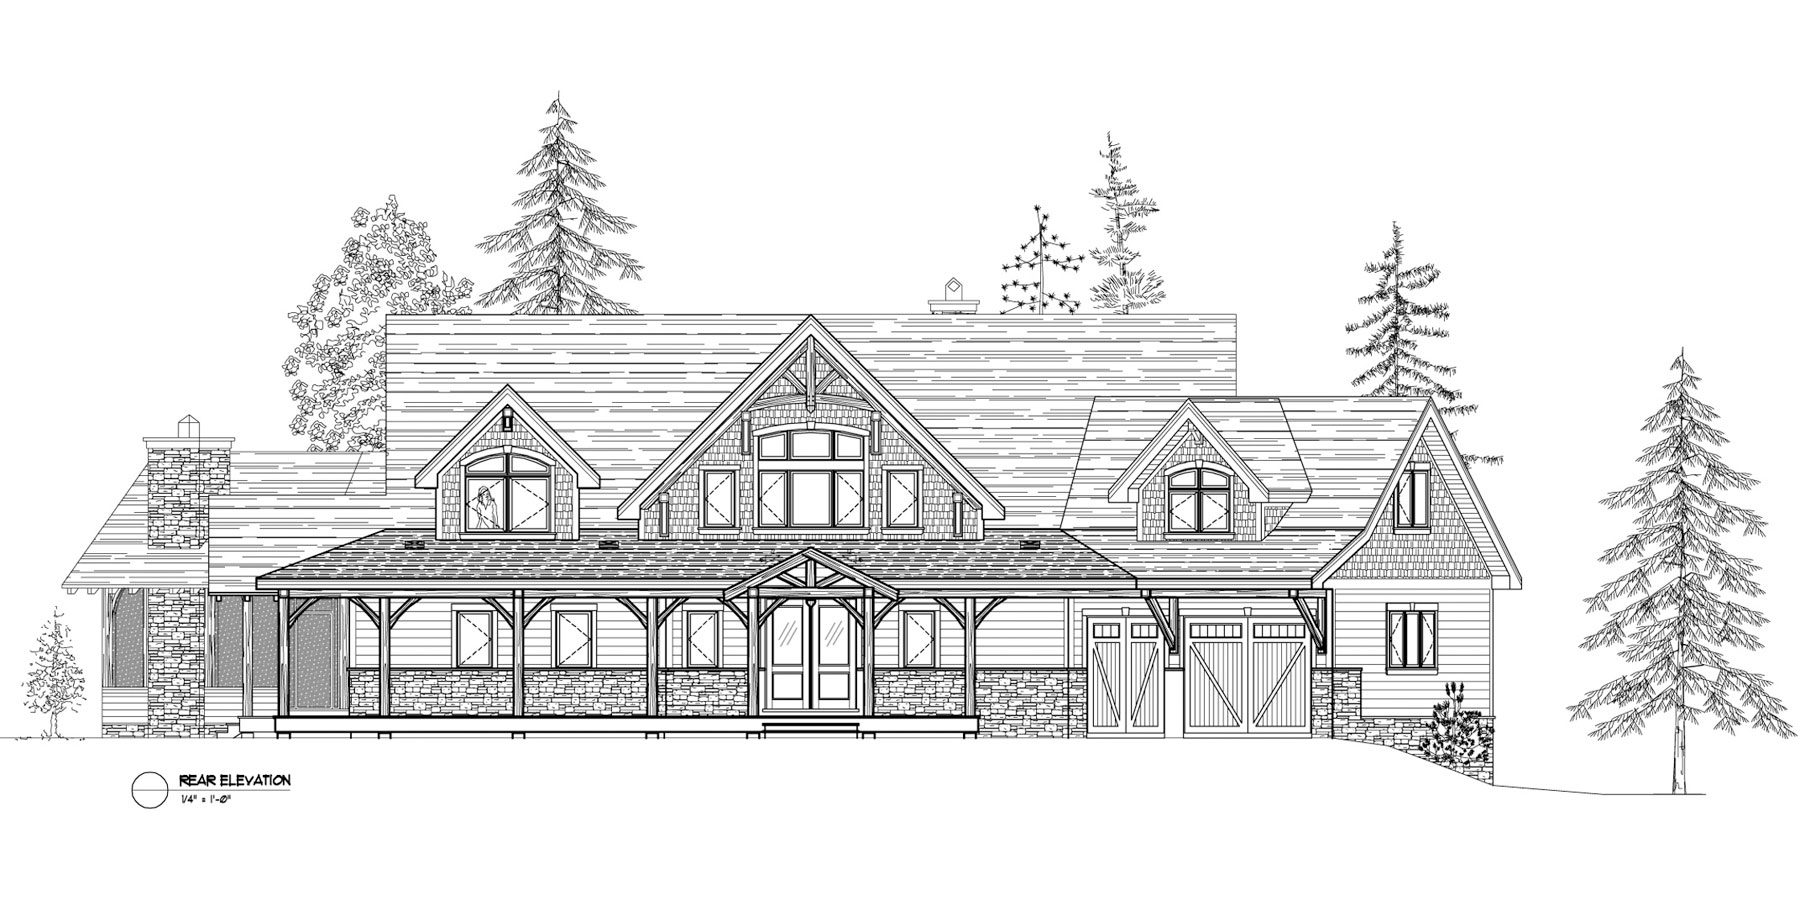 Normerica Timber Frame, House Plan, The Kearns 3510, Rear Elevation